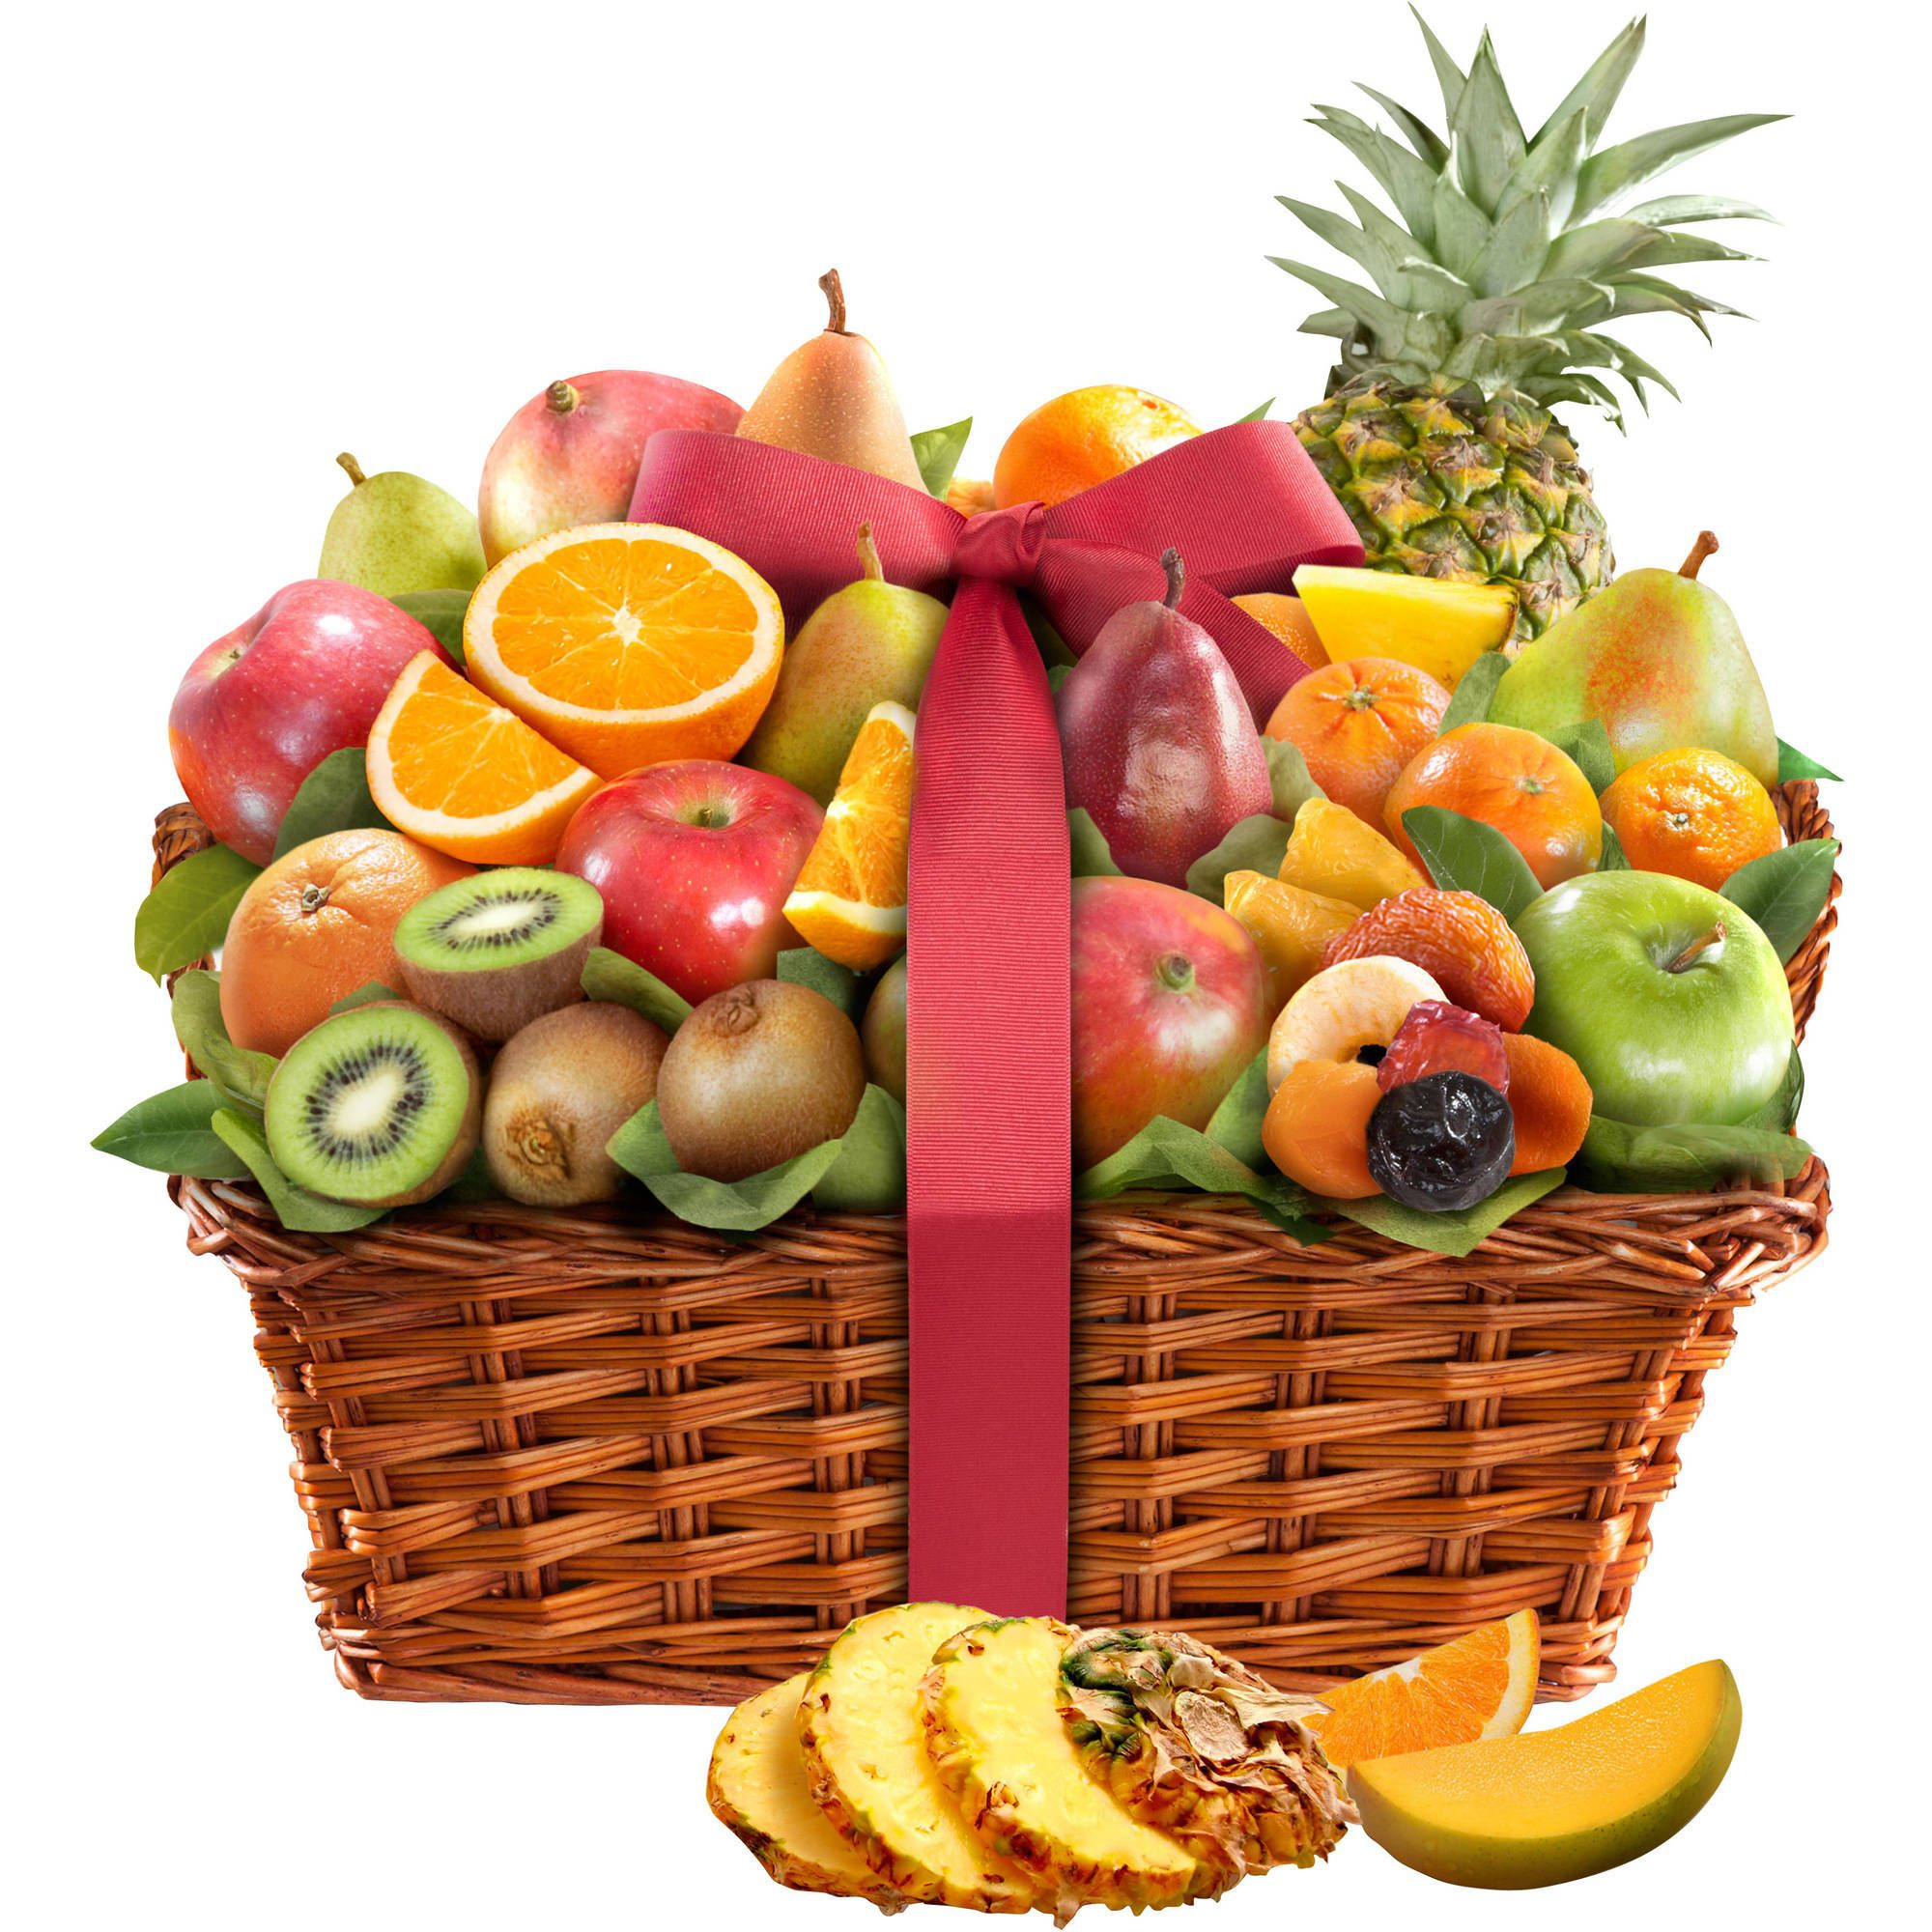 fruit gift basket great gift ideas gifts giftideas christmas